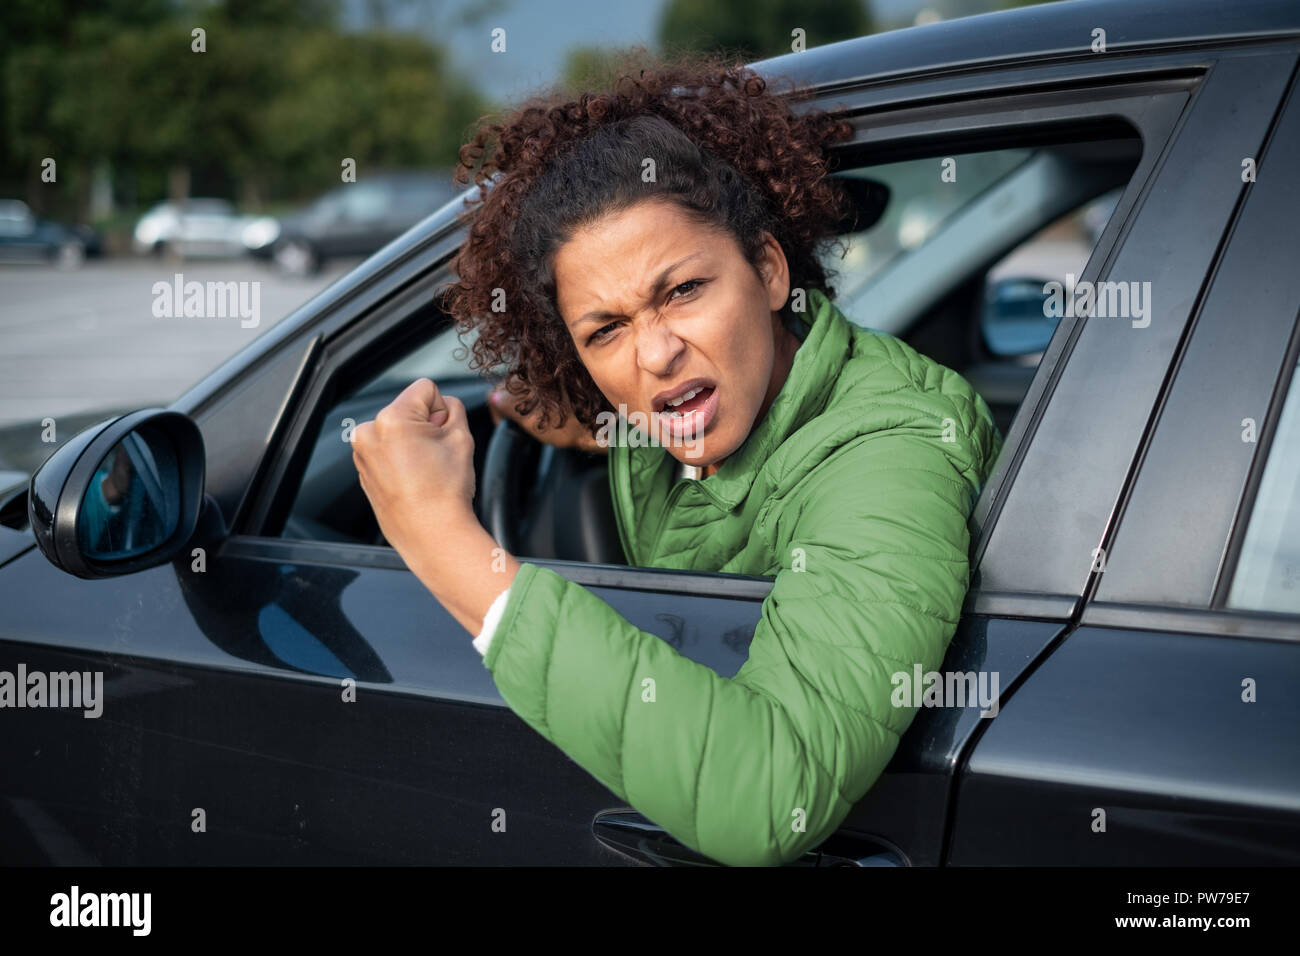 Rude black woman driver arguing and driving car - Stock Image